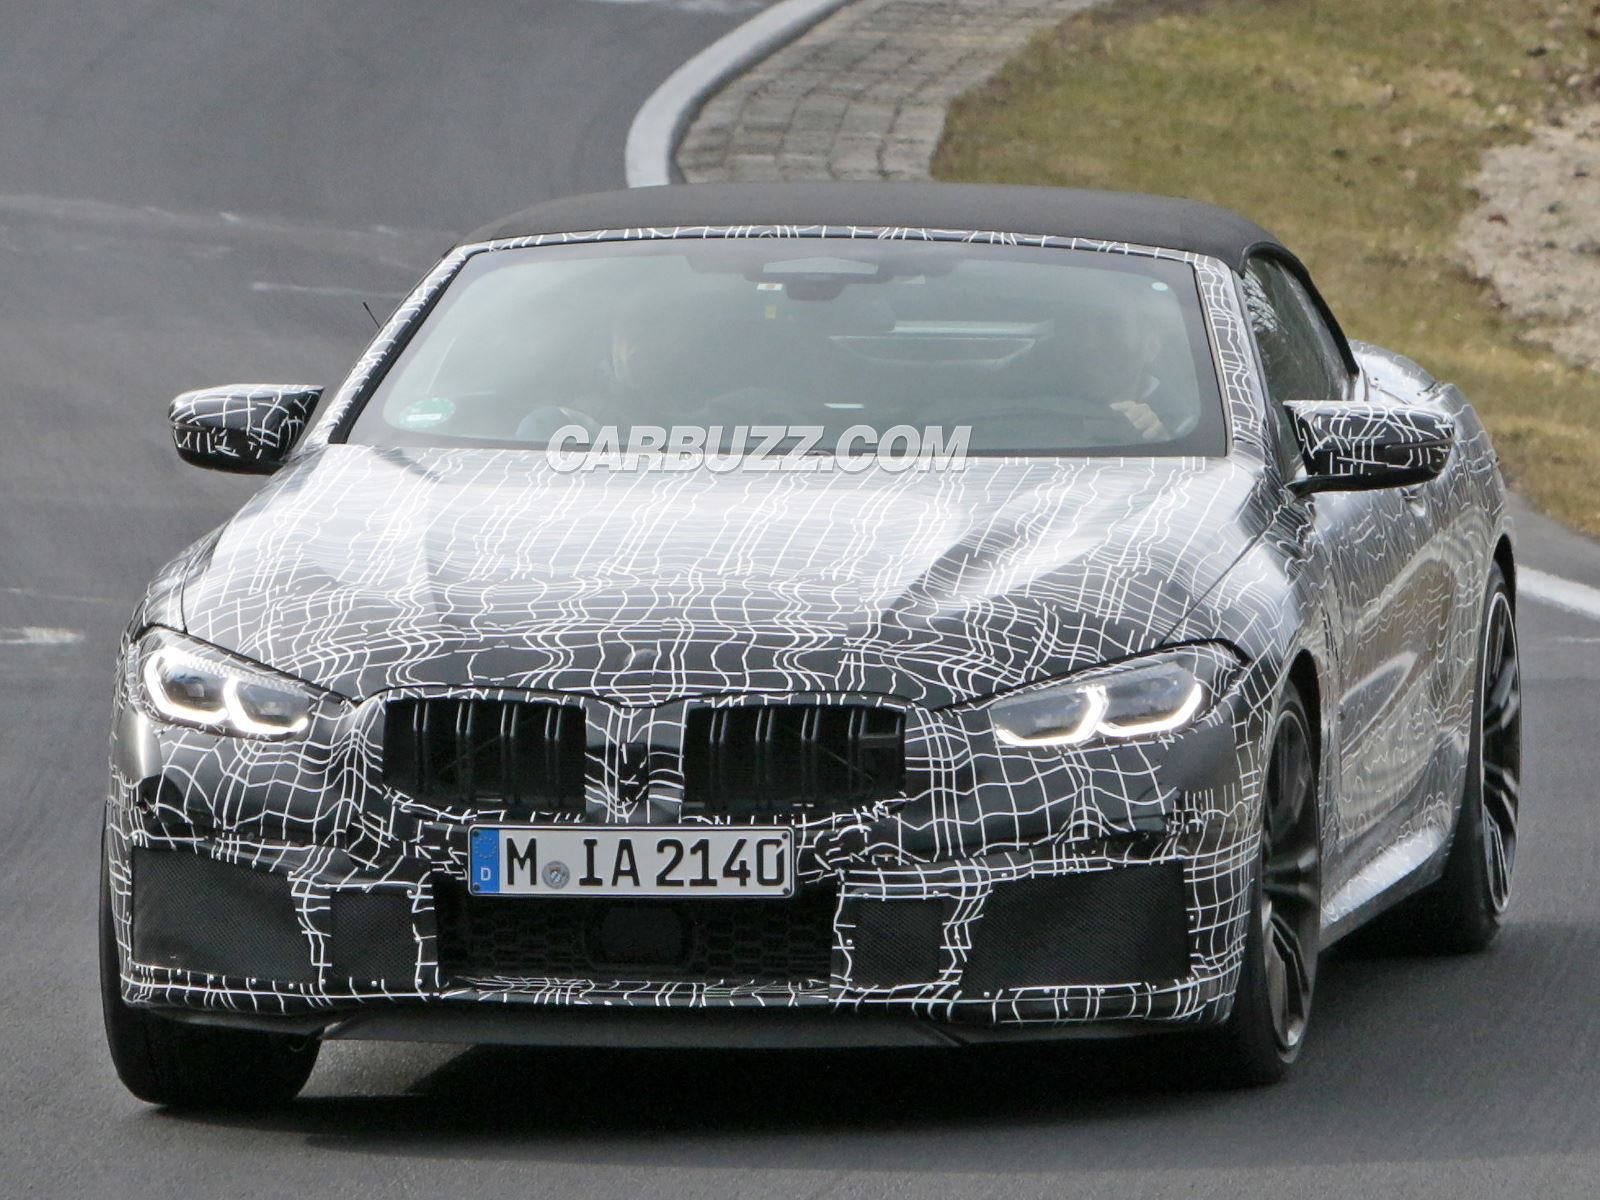 The Bmw M8 Convertible Is Already Testing At The Nurburgring Carbuzz